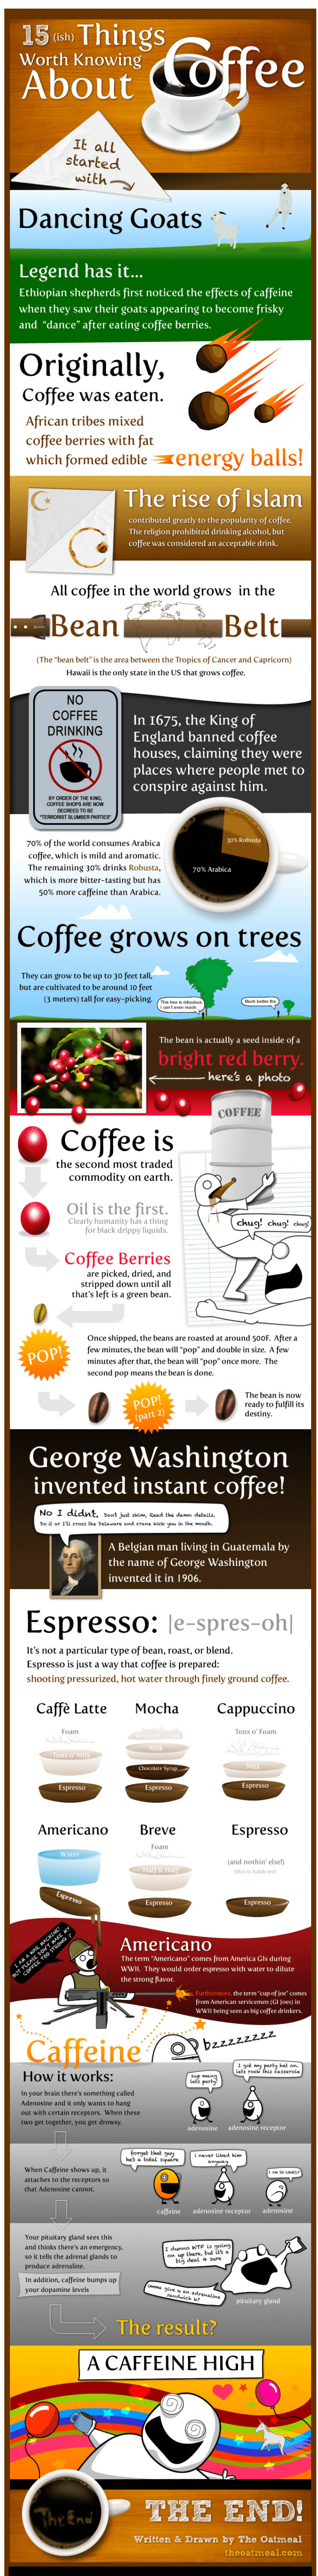 images of 15 facts about coffee